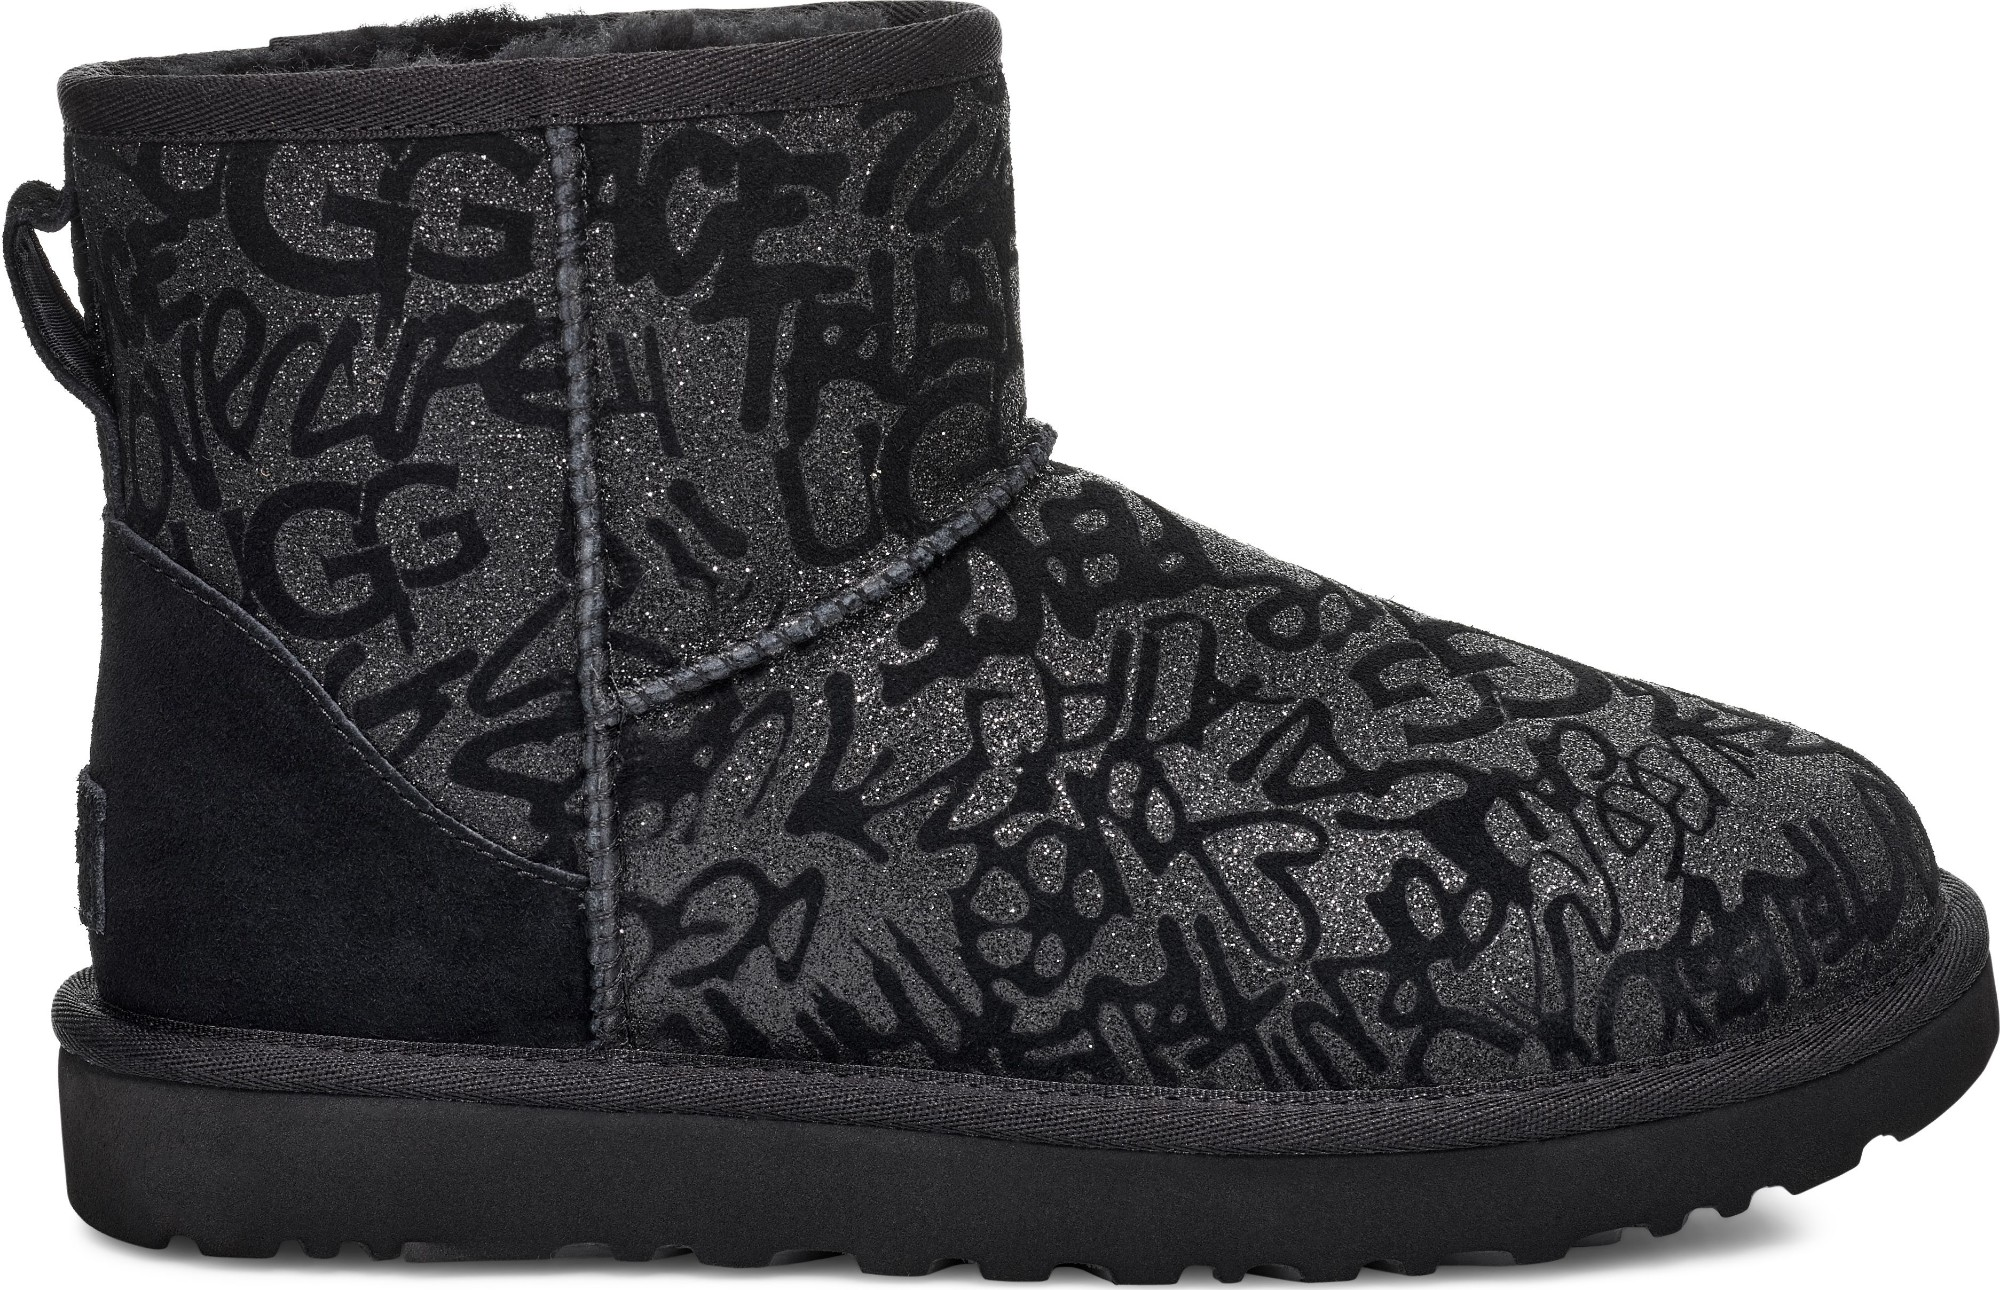 UGG Classic Mini Sparkle Graffiti Black 39